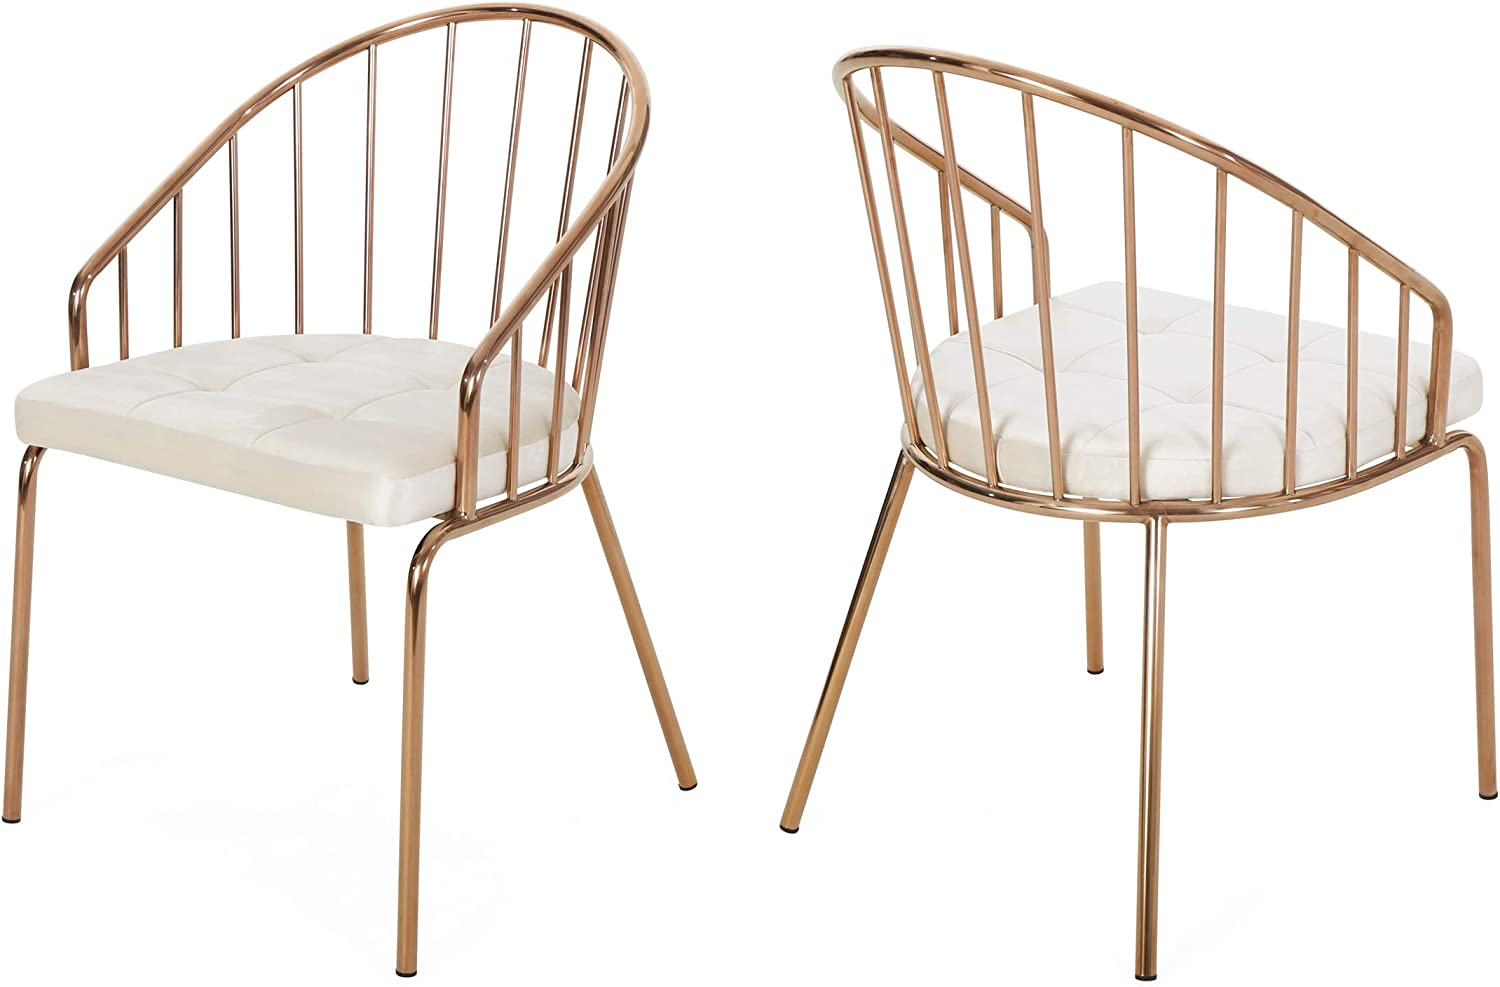 Christopher Knight Home 308296 Marcia Modern Velvet Dining Chair with Stainless Steel Frame (Set or 2), Beige and Rose Gold